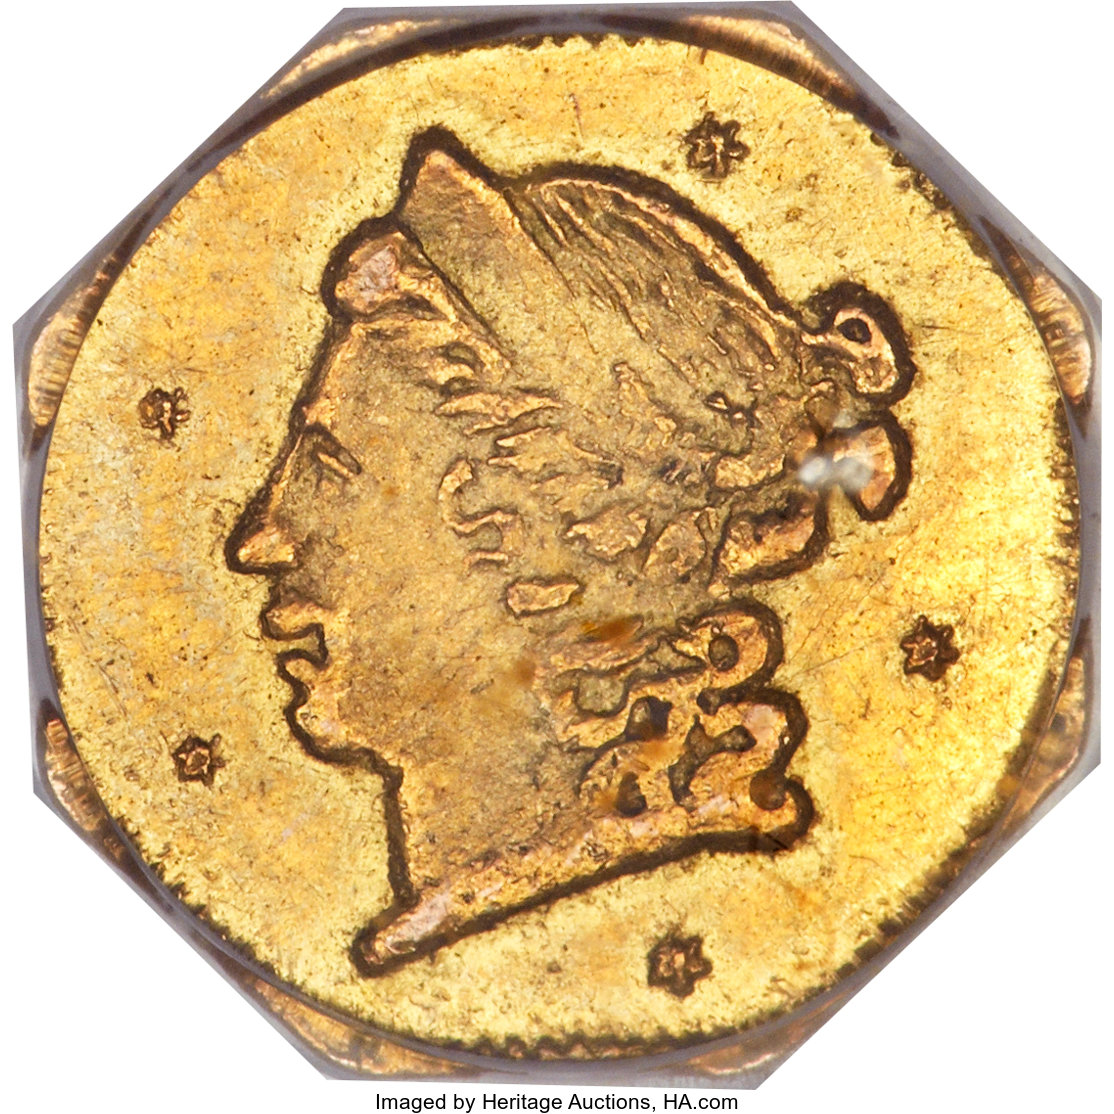 sample image for 1856 Cal. Gold 25c MS (BG-703A)